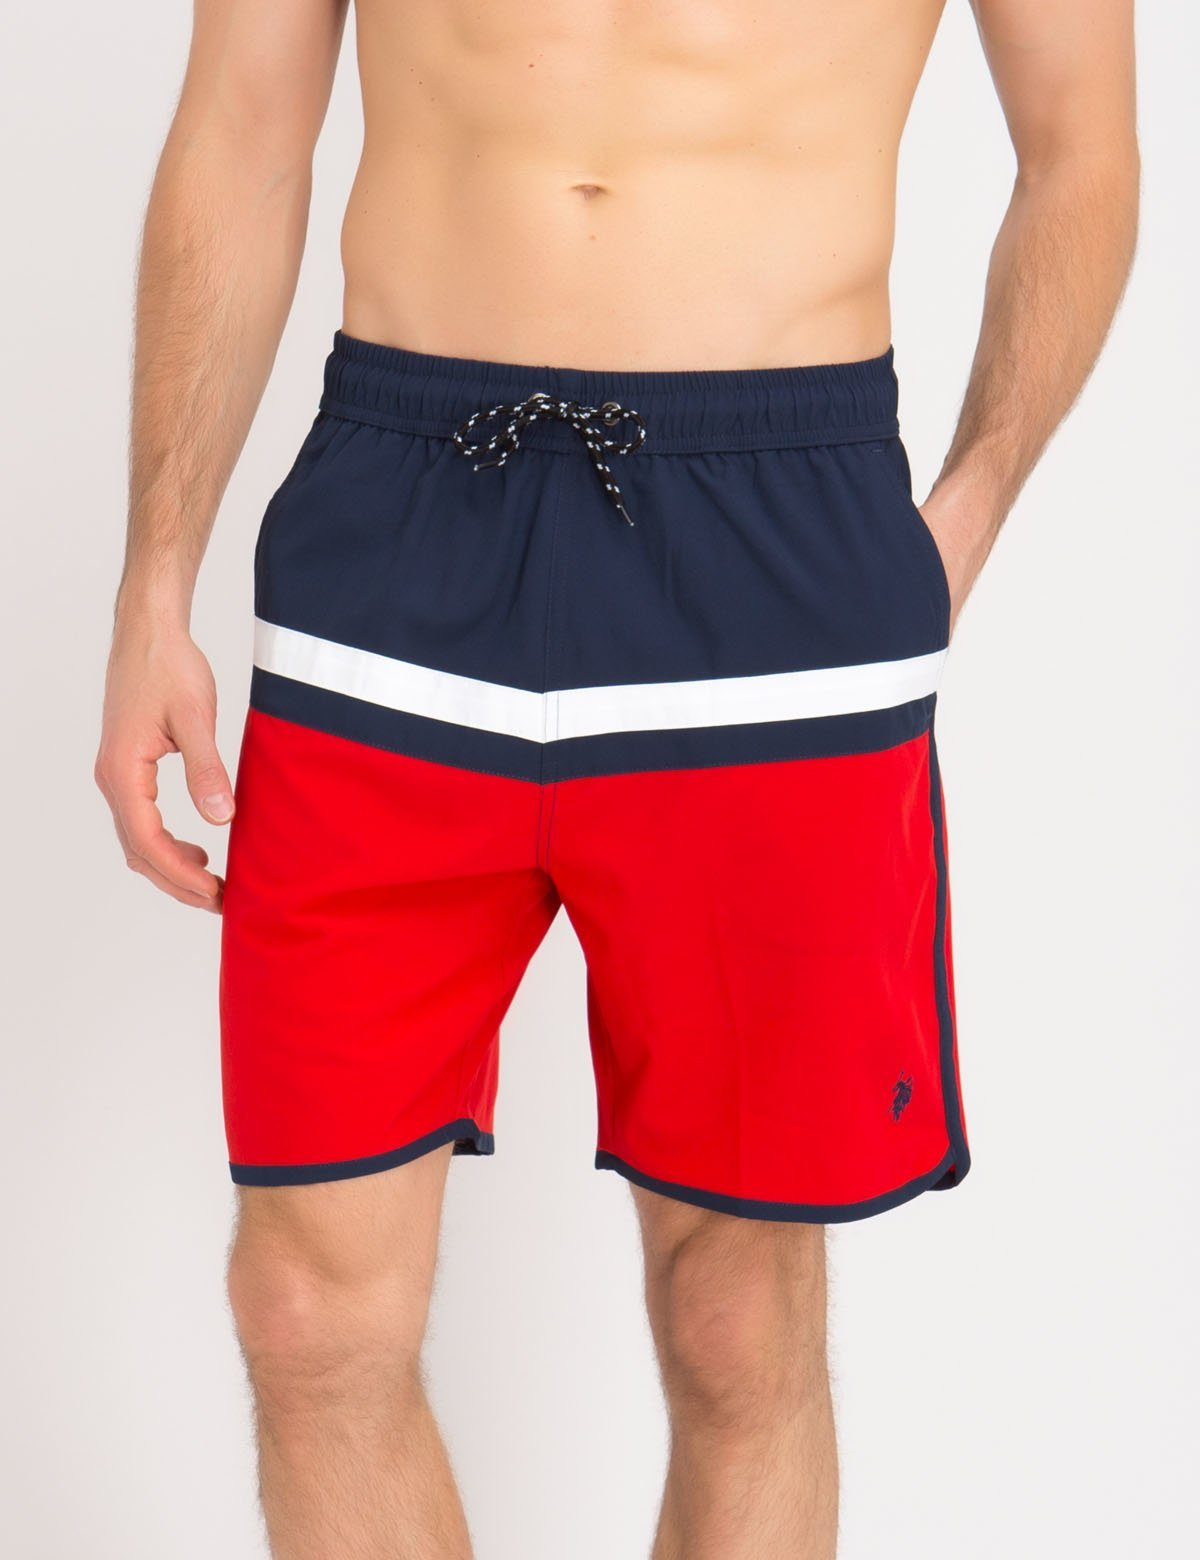 8e77847c03 COLORBLOCK SWIM TRUNKS - U.S. Polo Assn.